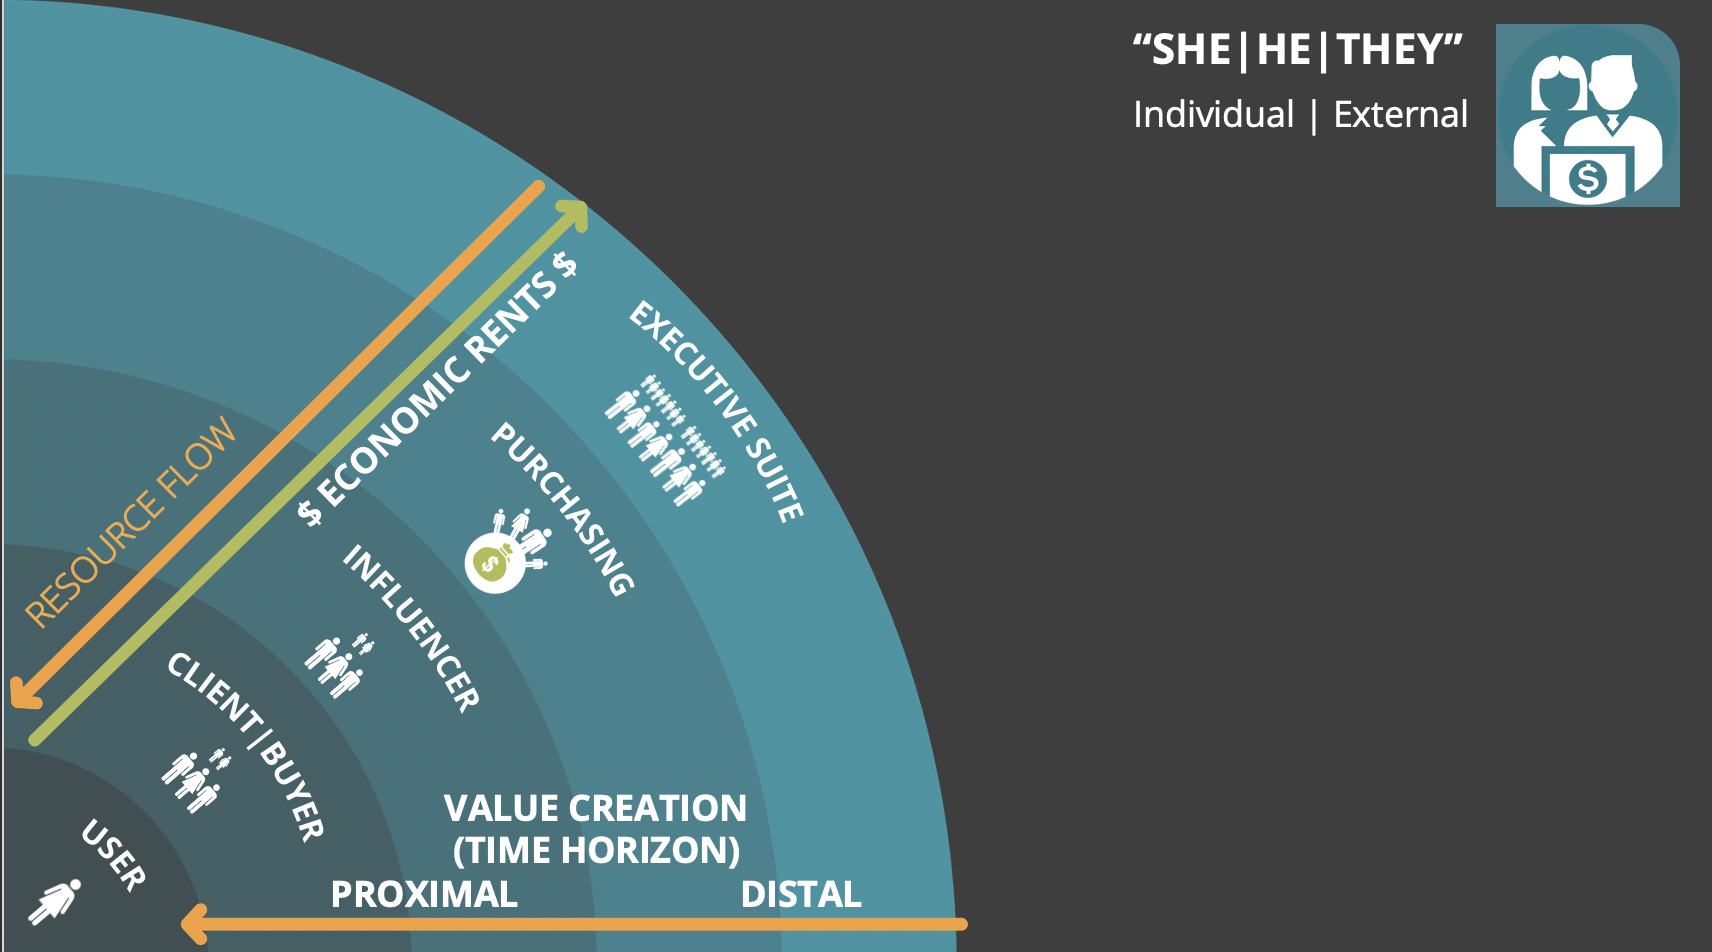 Nested Semi-Circles of External Individuals | CXO > Purchasing > Influencer > Client Buyer > User / Consumer | Arrows showing flow from the outside in for resources and from the inside out for economic rents